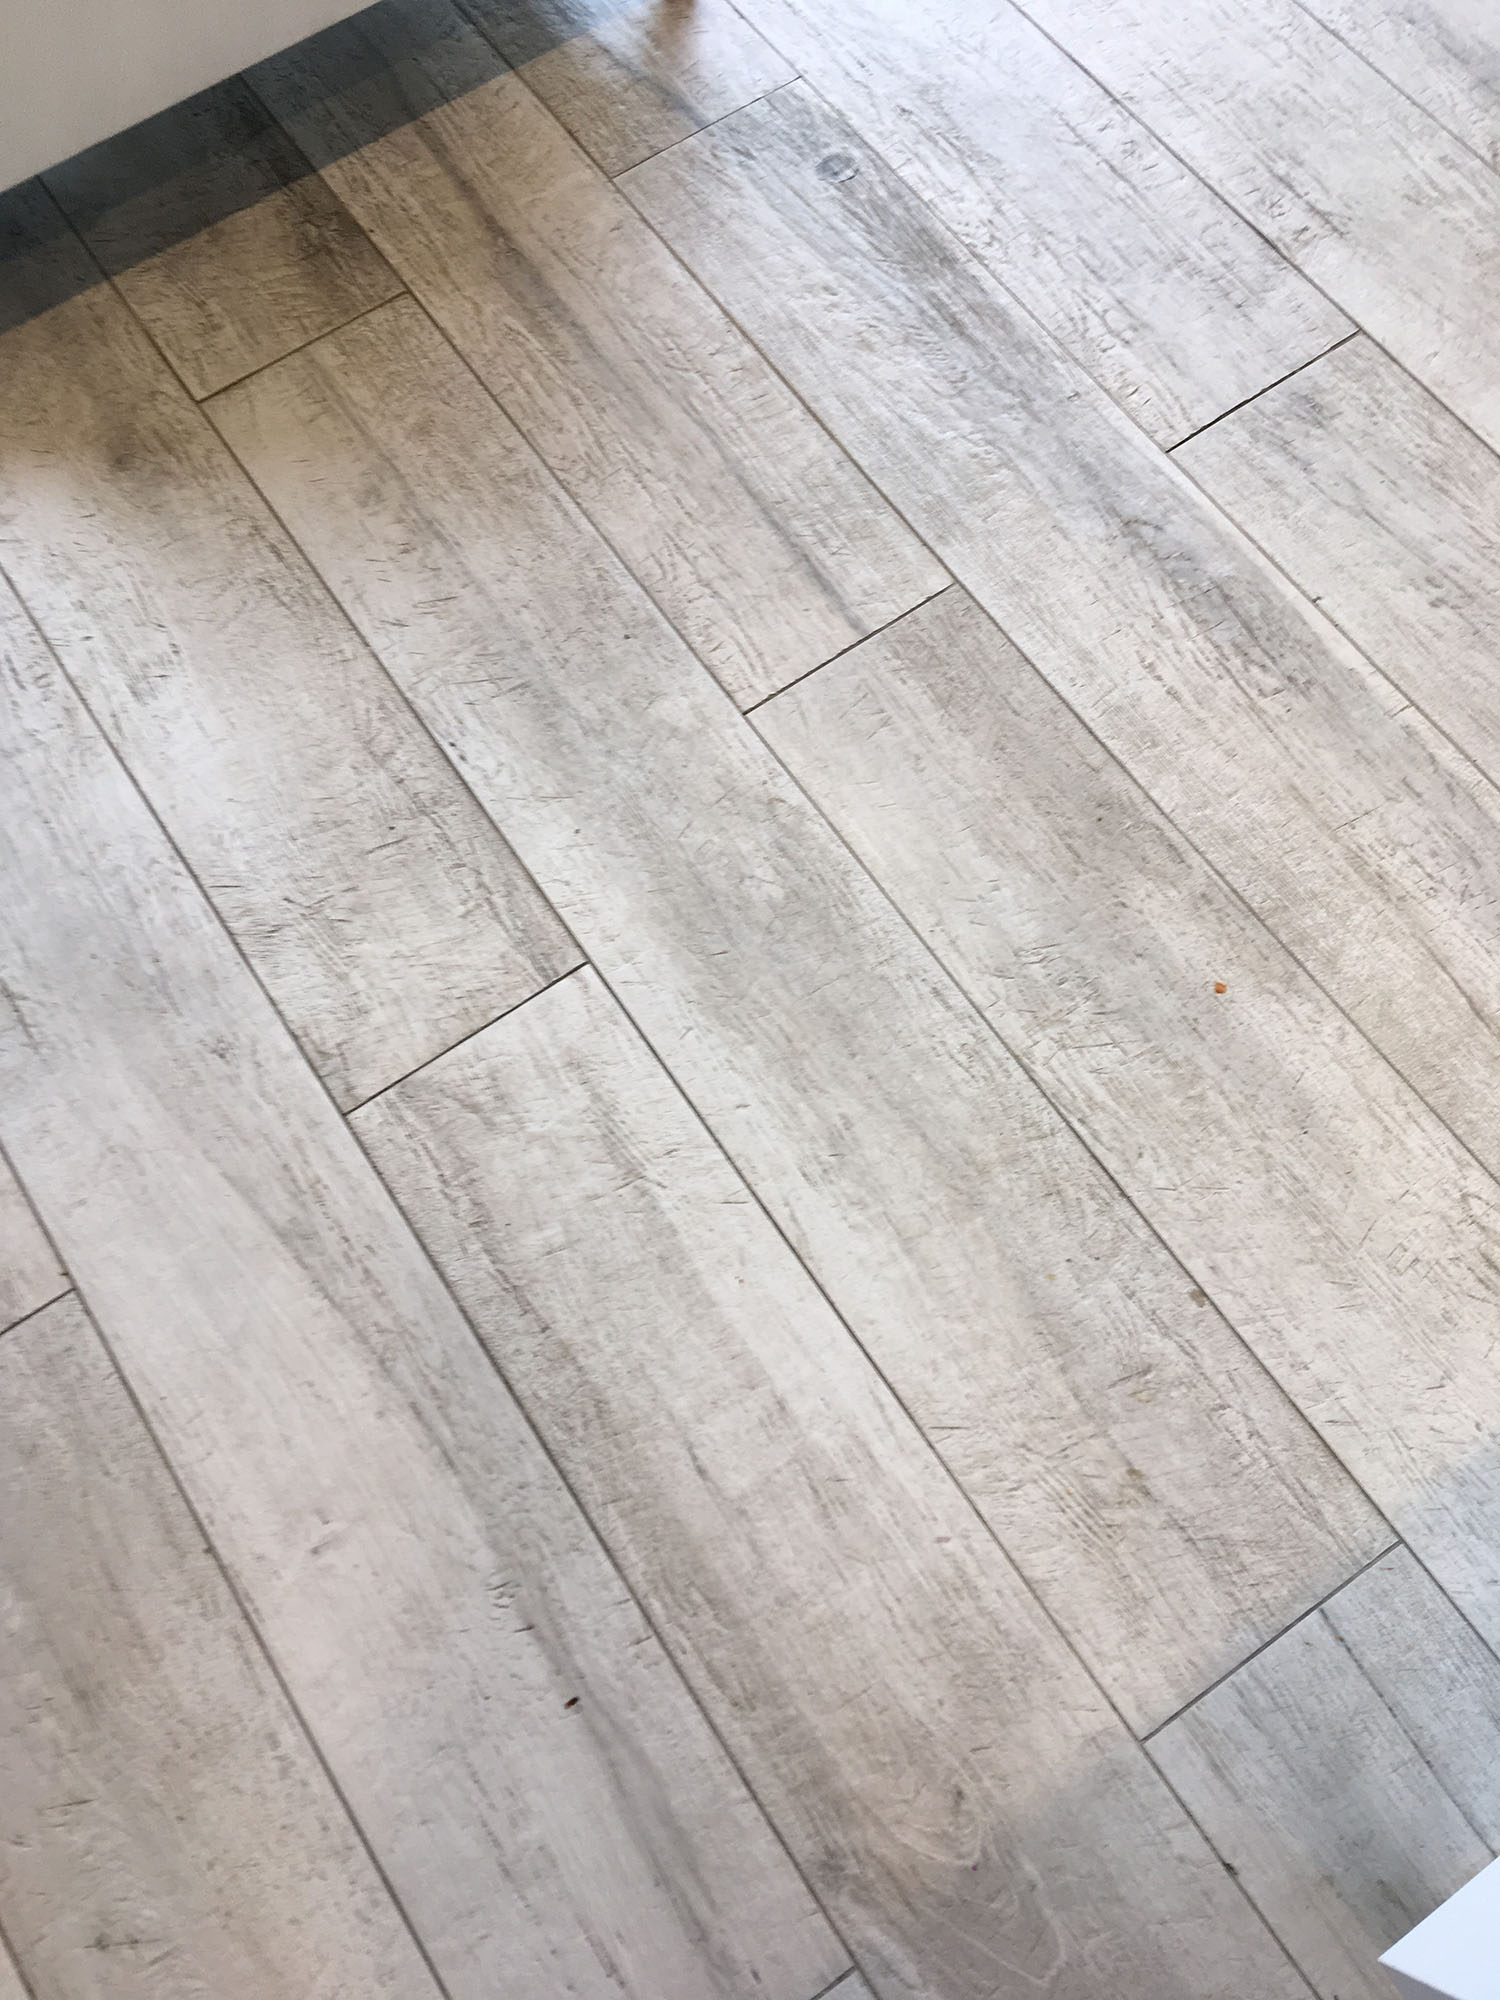 Wood Effect Porcelain Floor Before Deep Cleaning Hampton